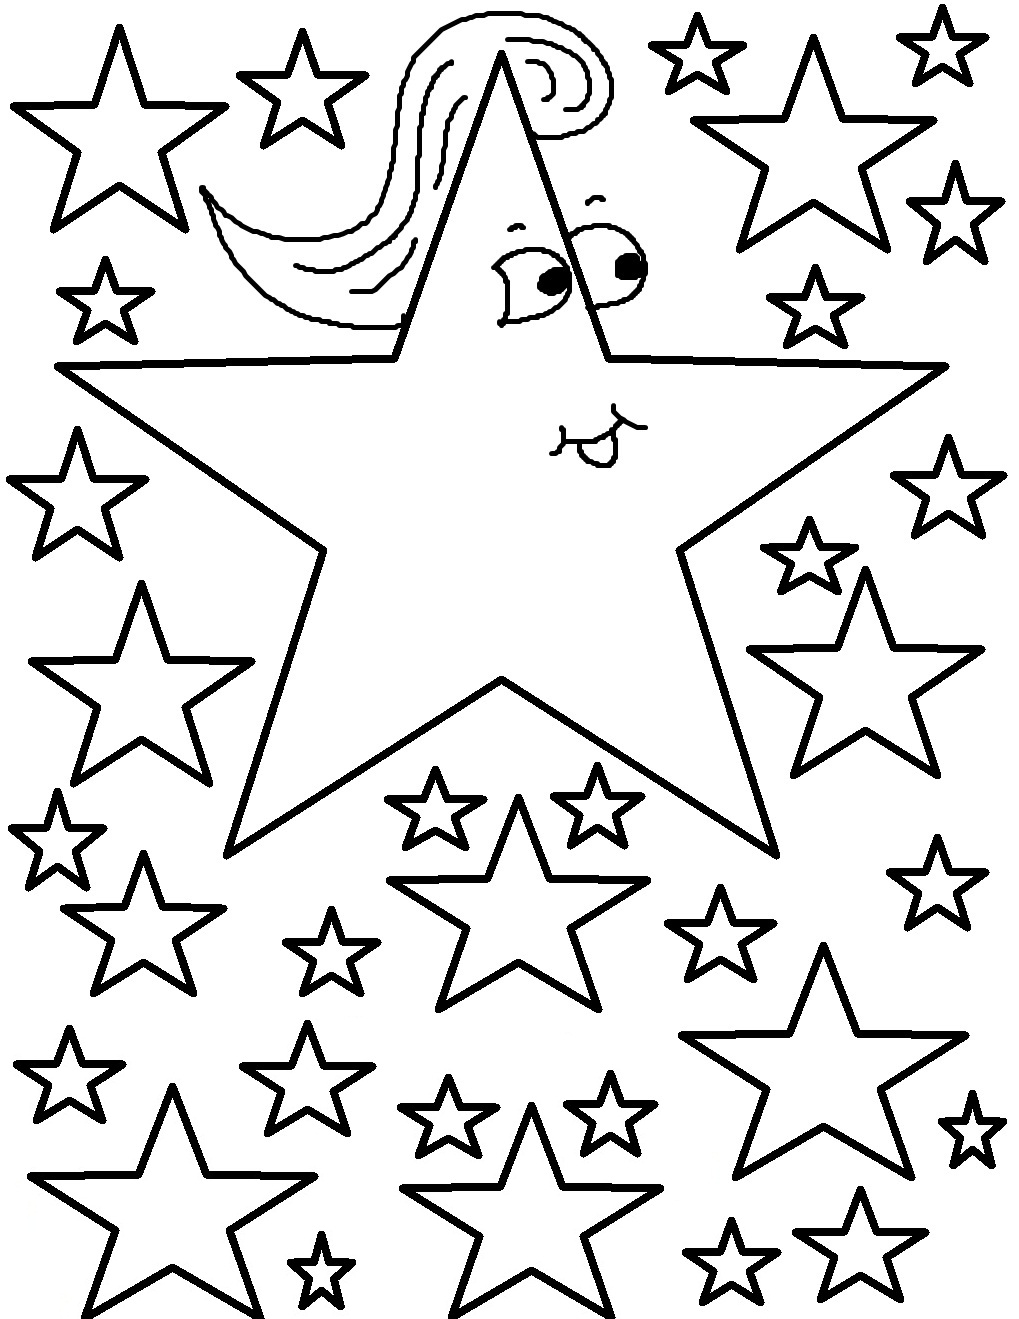 Star Shape Coloring Page Star Shape Coloring Page Decimamas